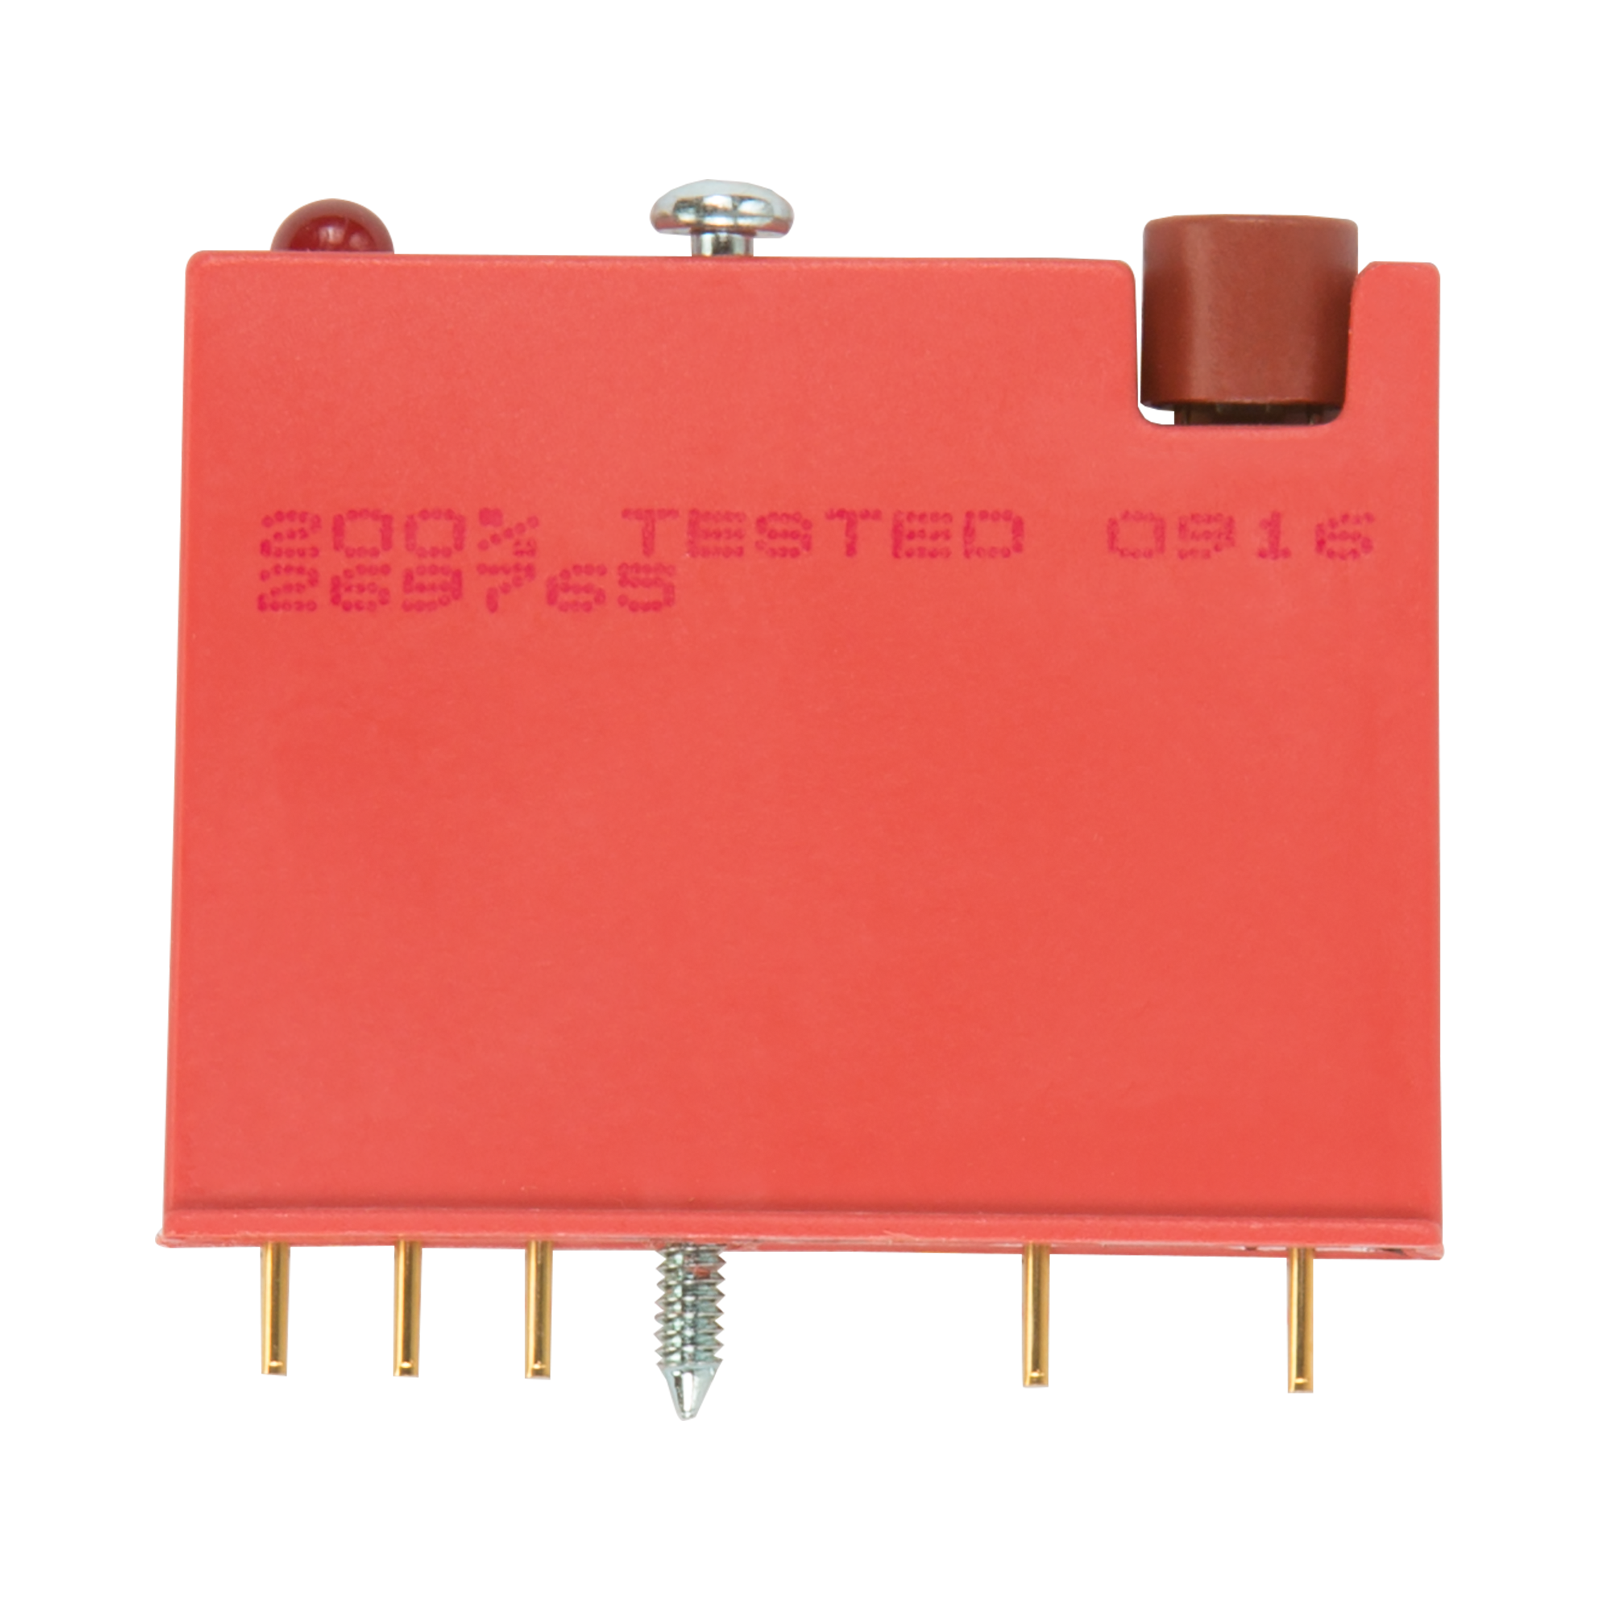 Opto22 G4odc5r G4 Reed Relay Output 5 Vdc Logic Normally Open Form C Wiring Diagram Spst Previous